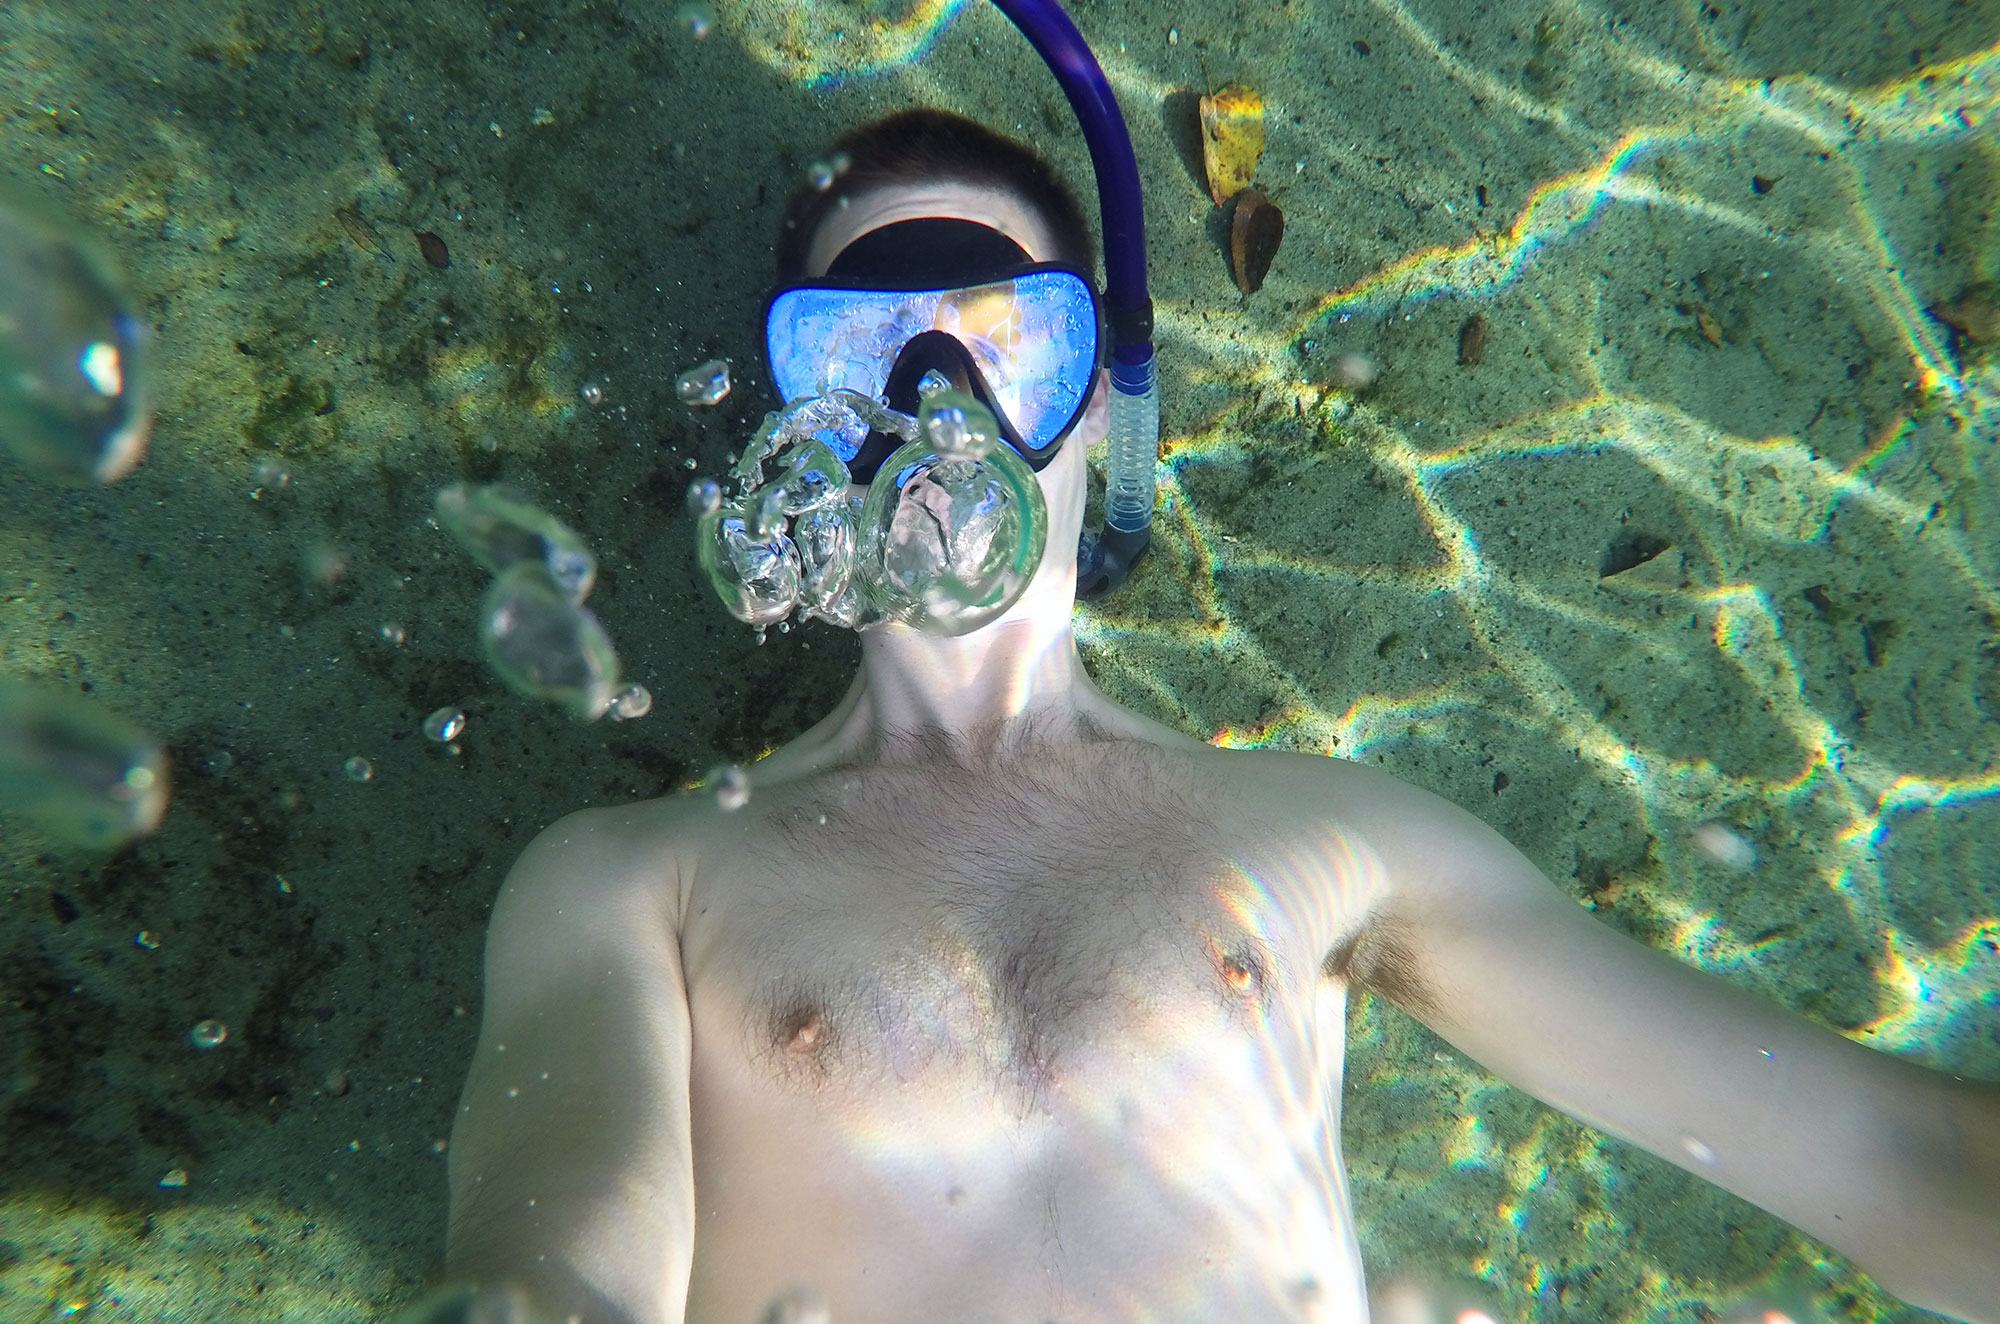 Brad blowing ring bubbles underwater at Wekiwa Natural Spring State Park in Florida